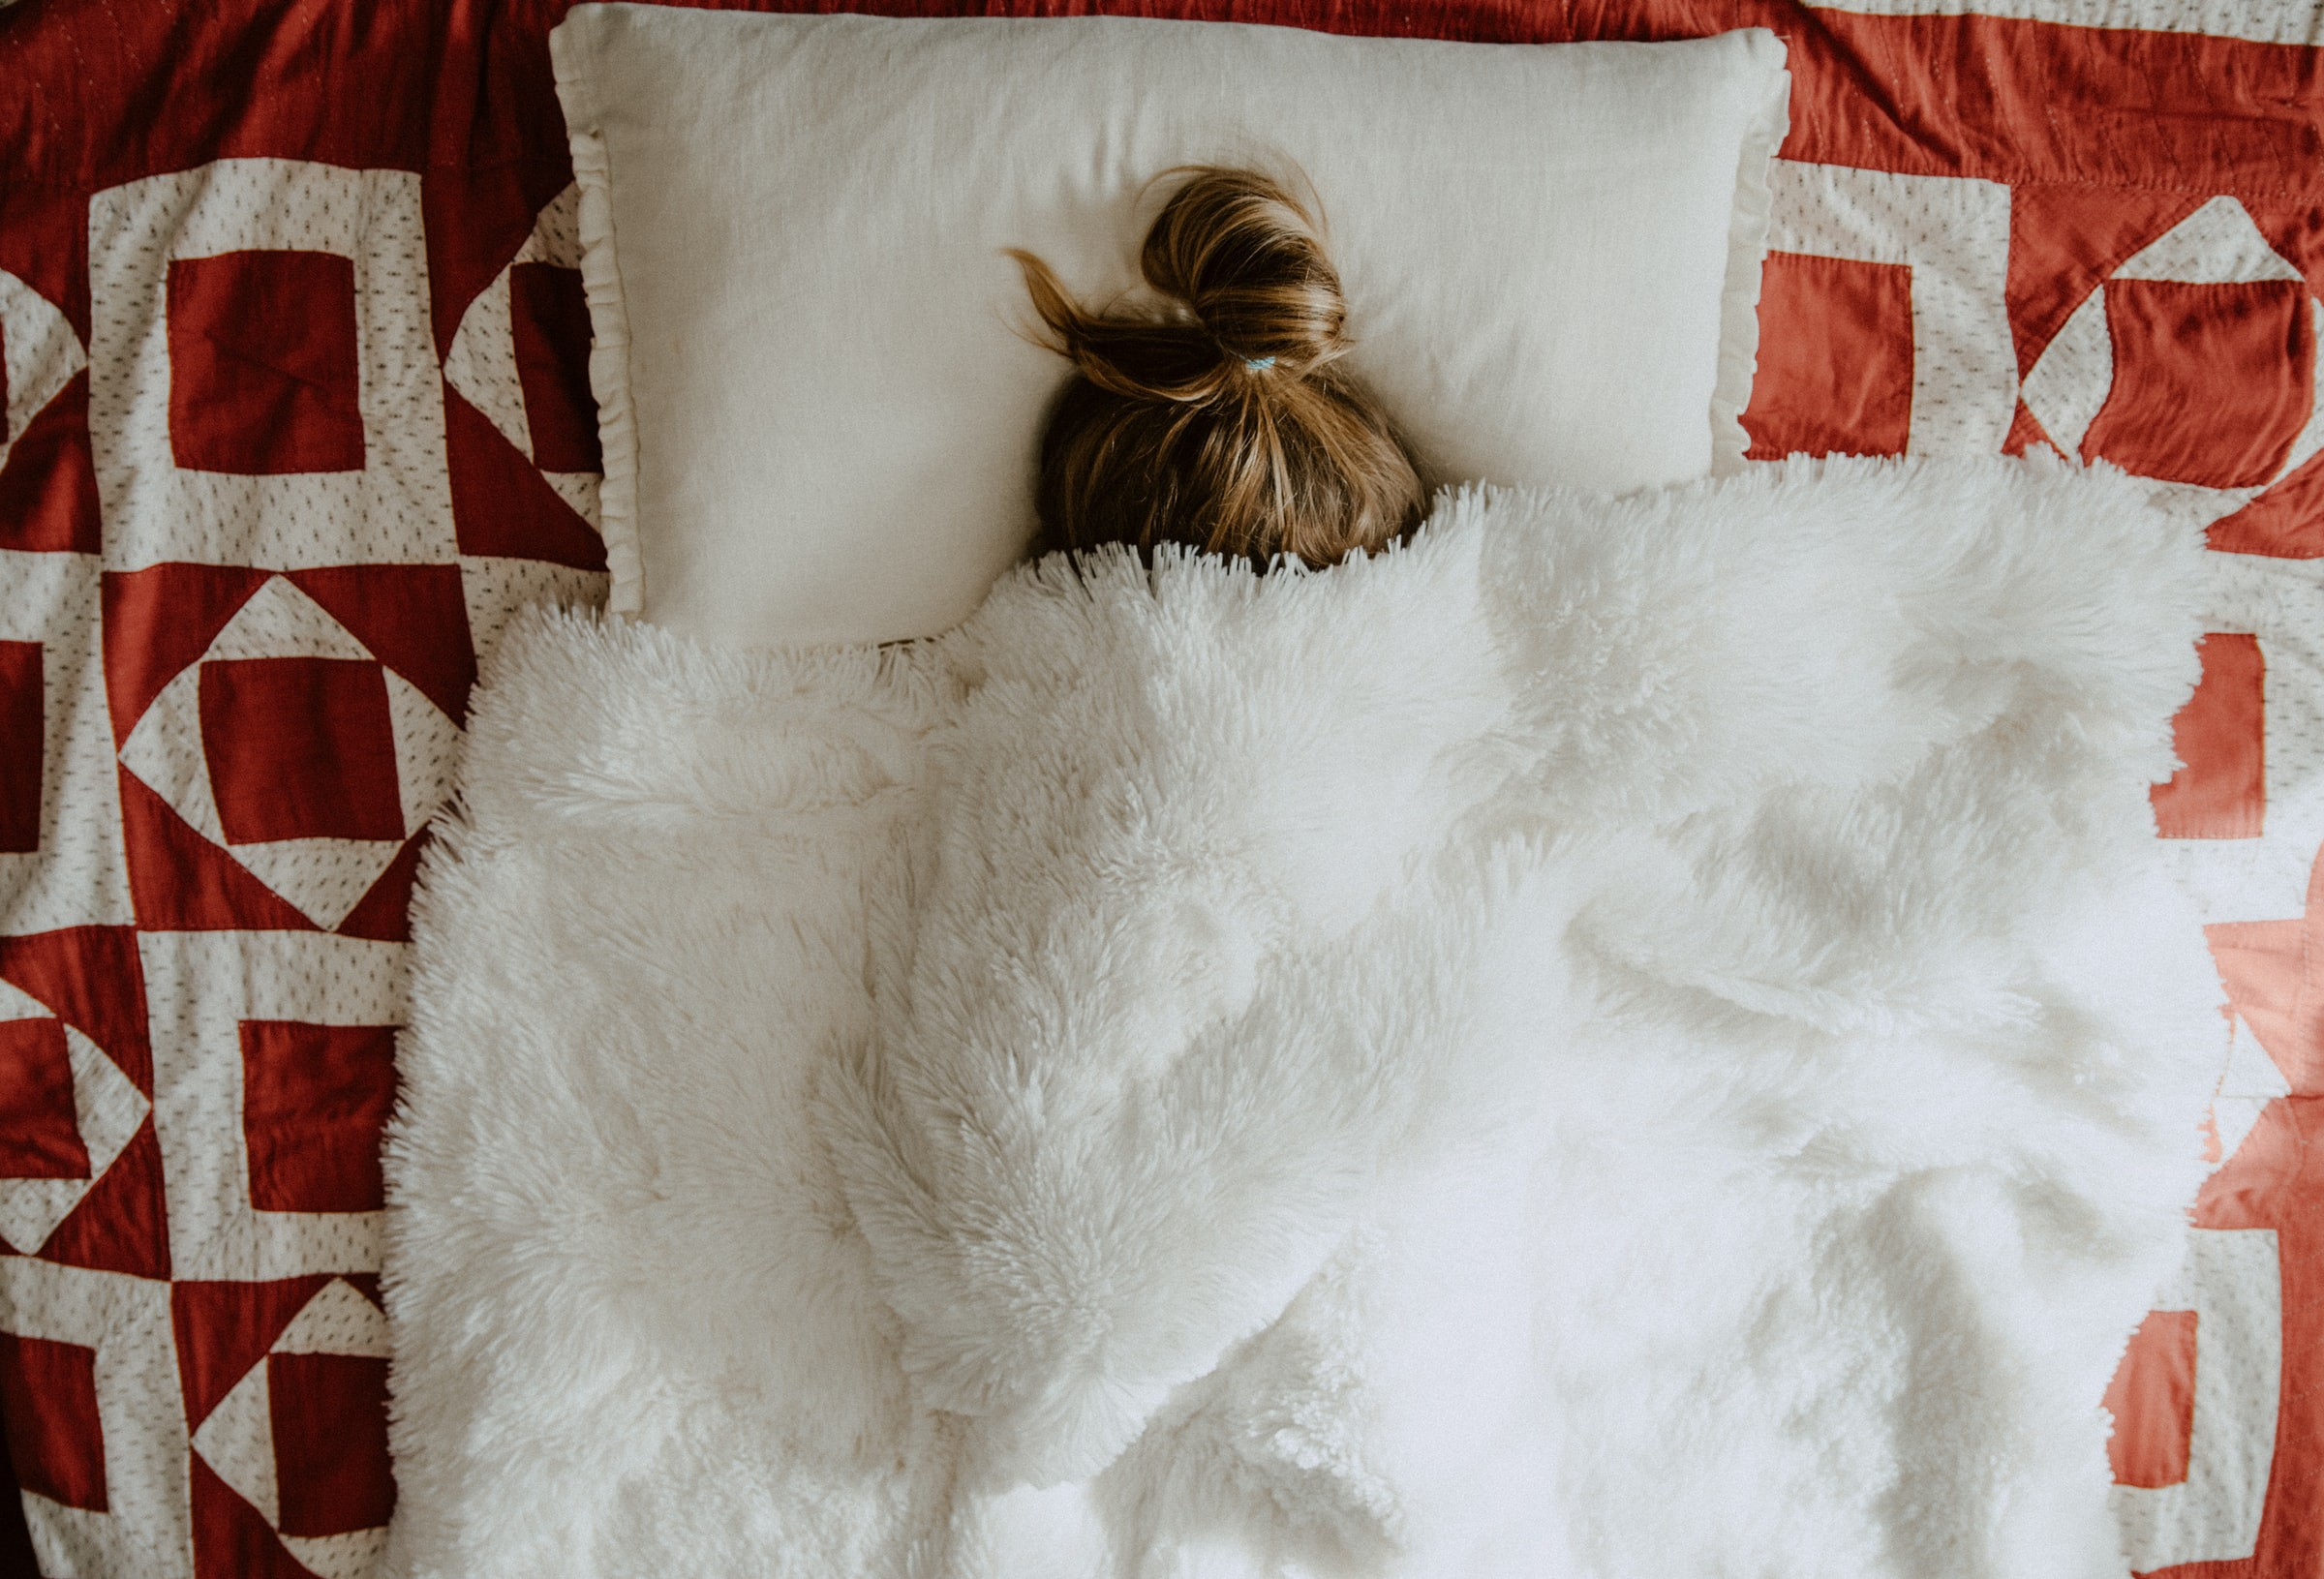 Woman hides under covers on bed